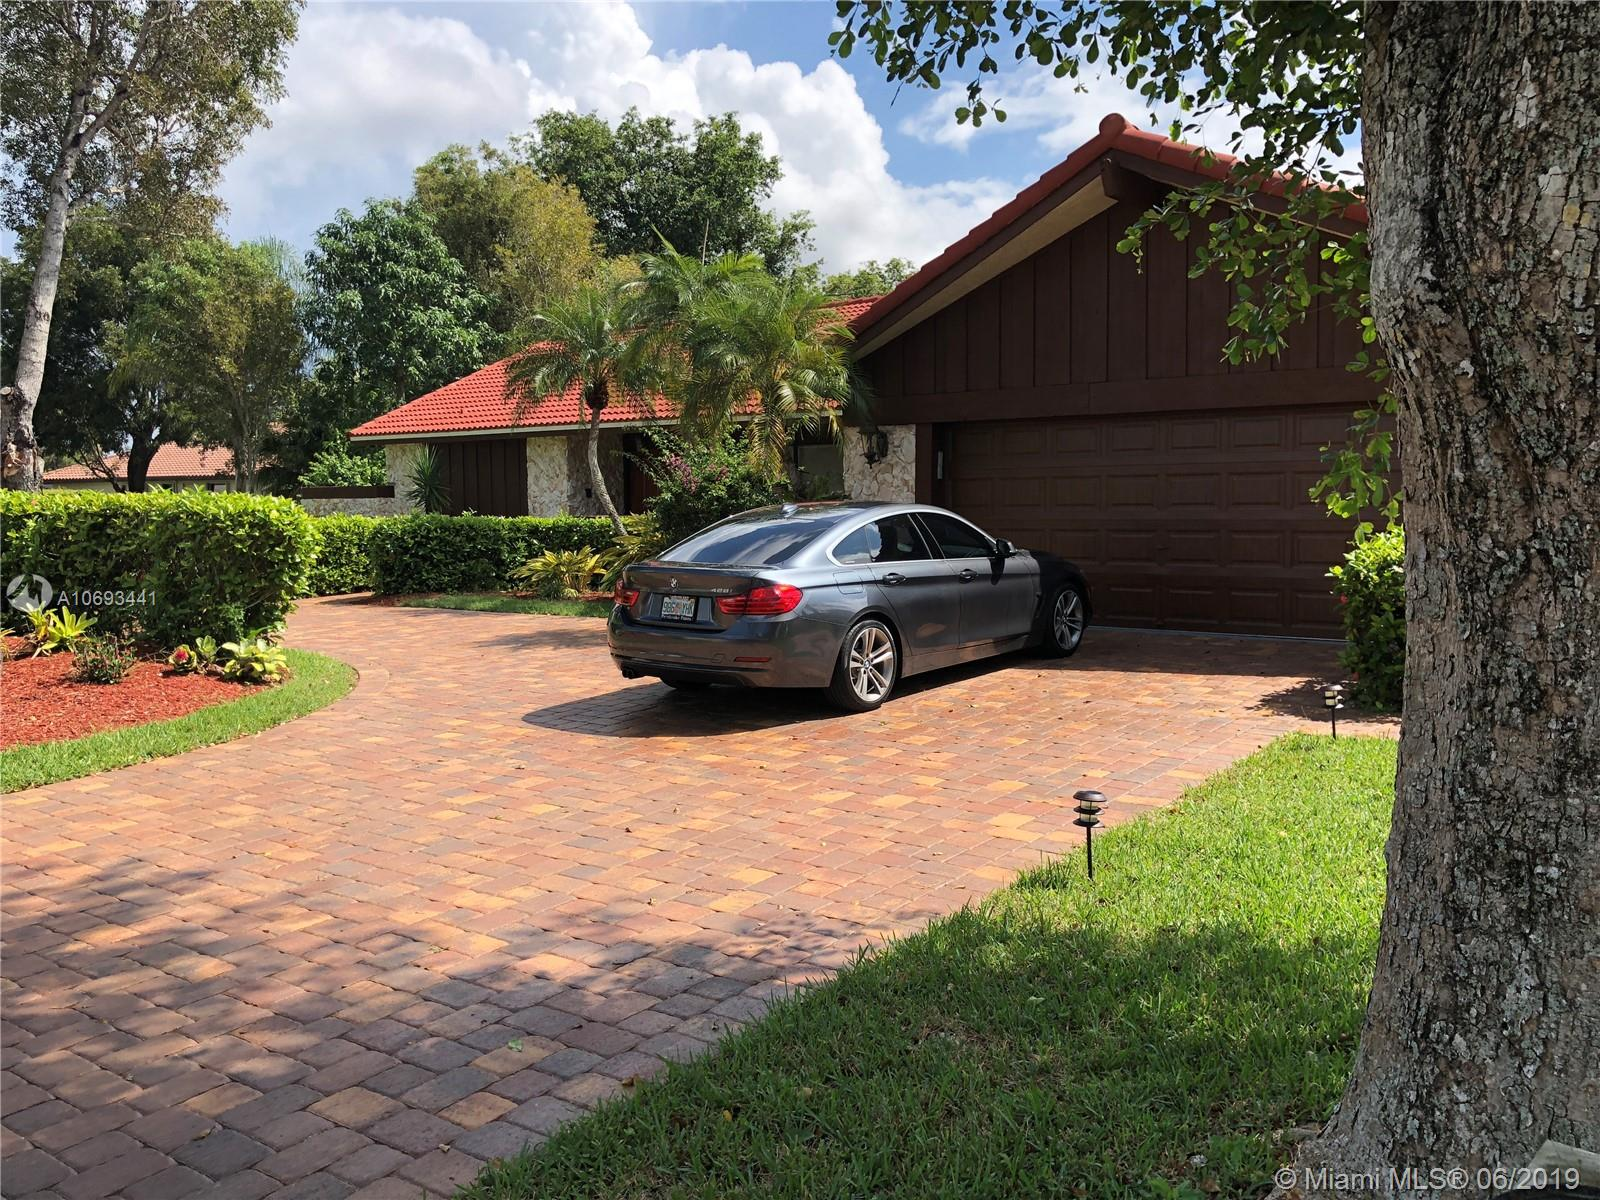 Listing A10693441 - Large Photo # 1